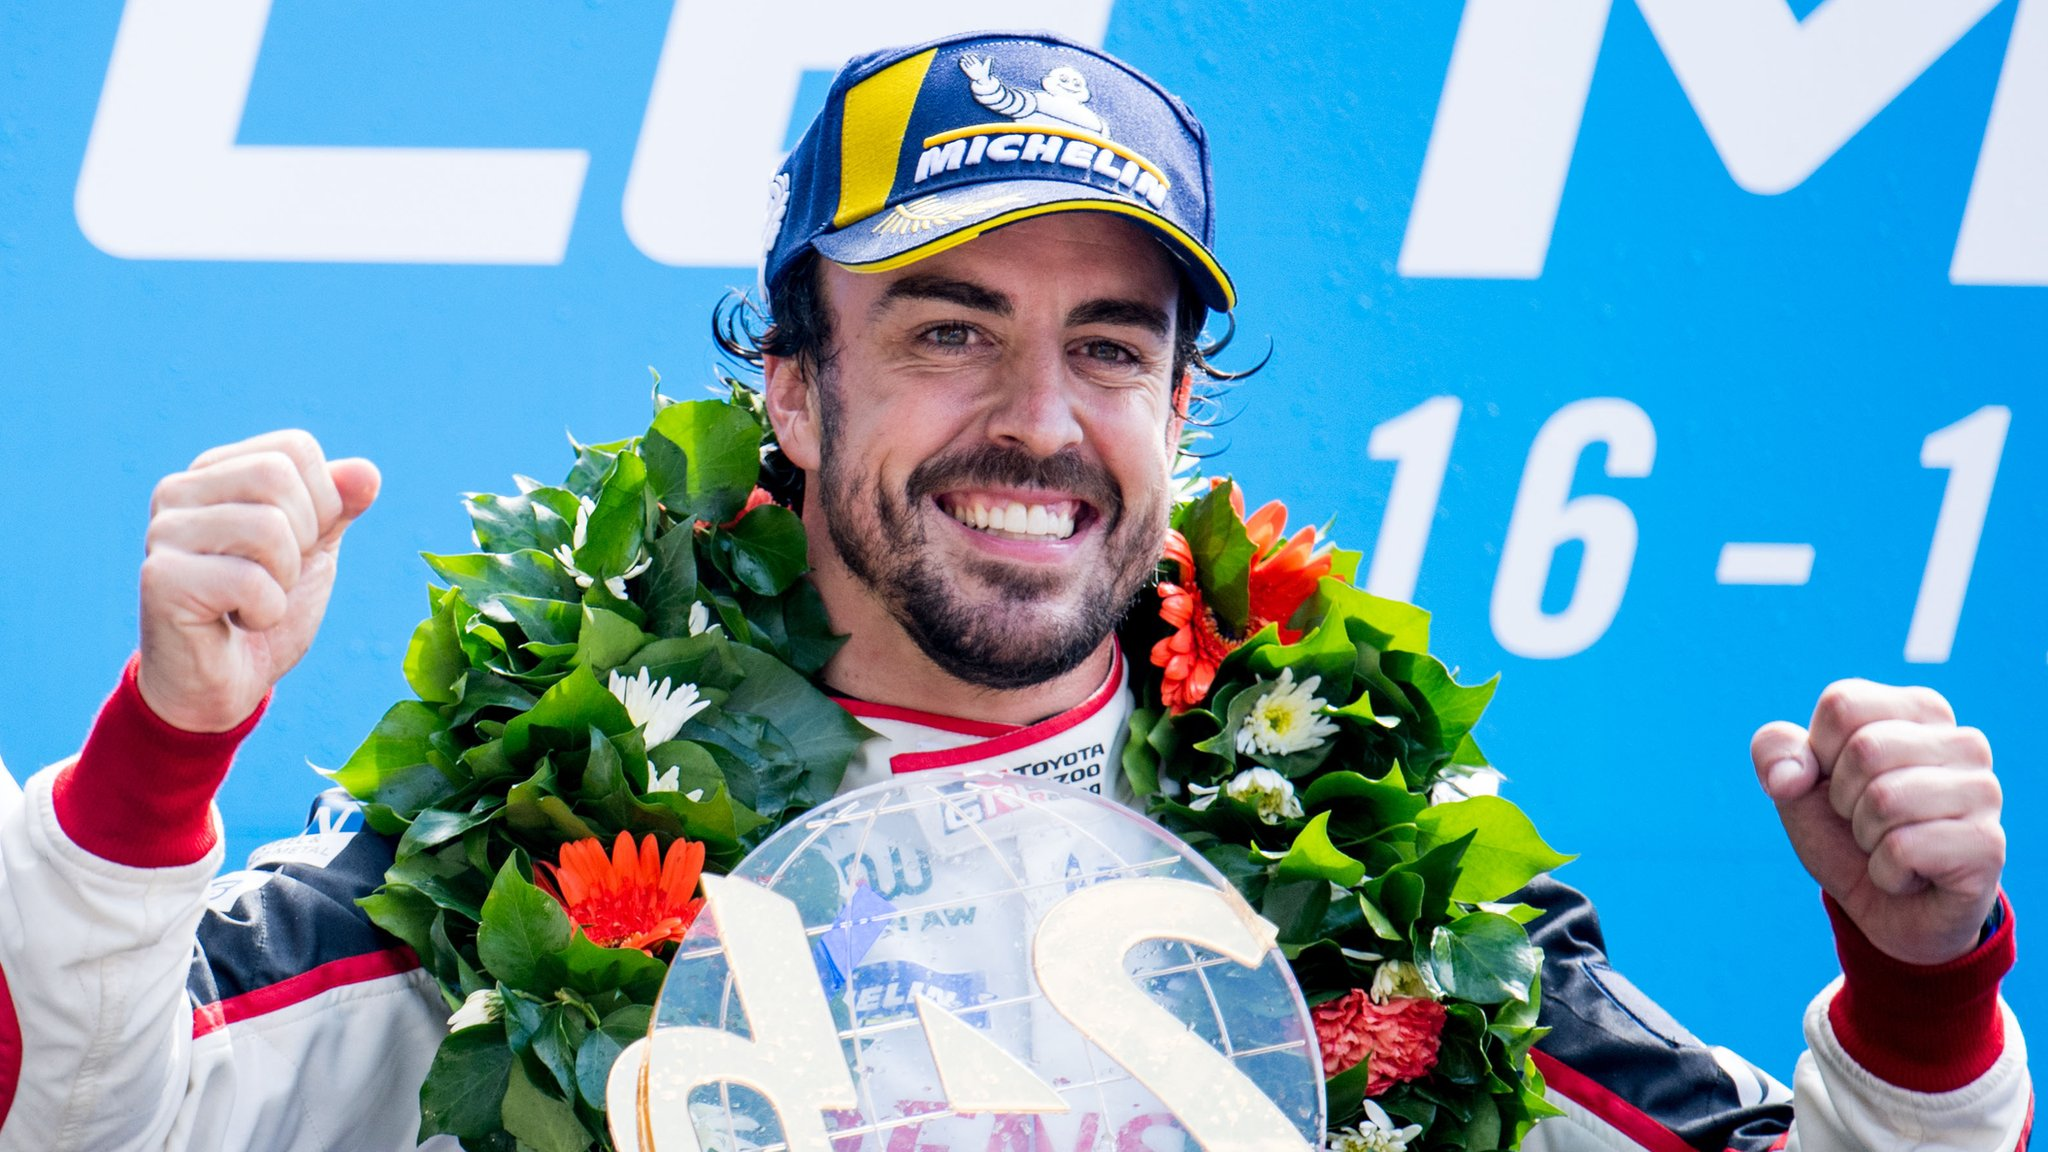 Alonso to consider F1 future after Le Mans win - gossip